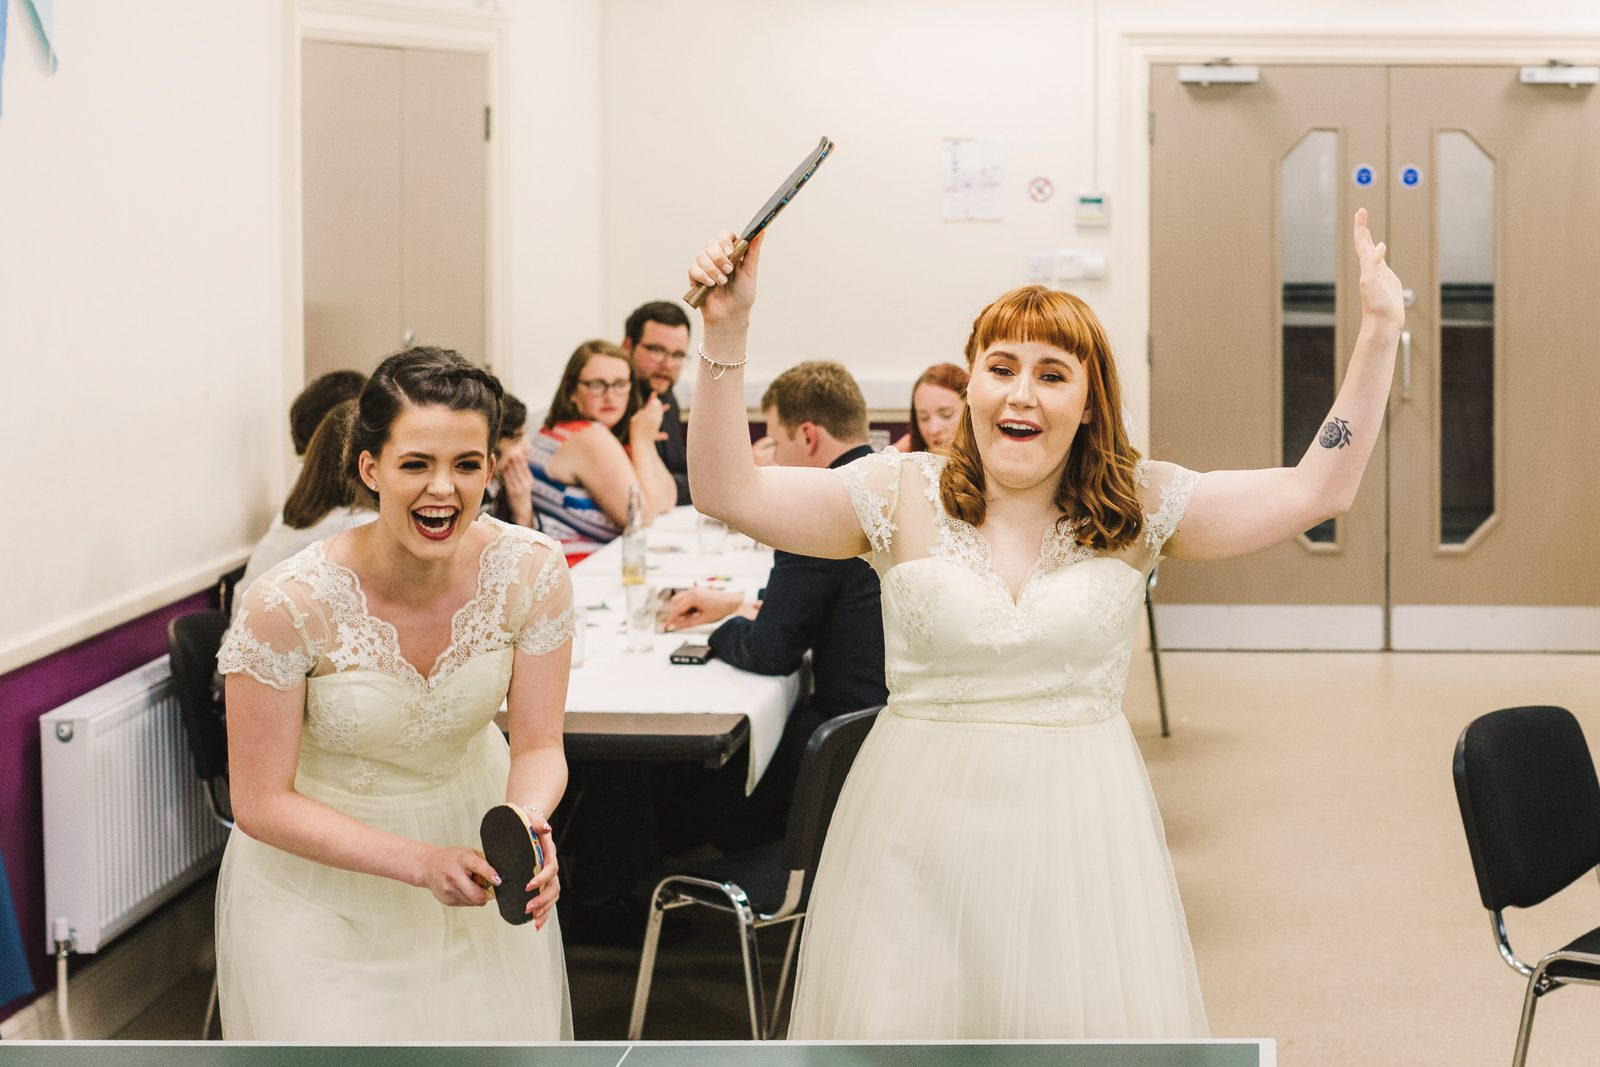 wedding entertainment ideas - table tennis